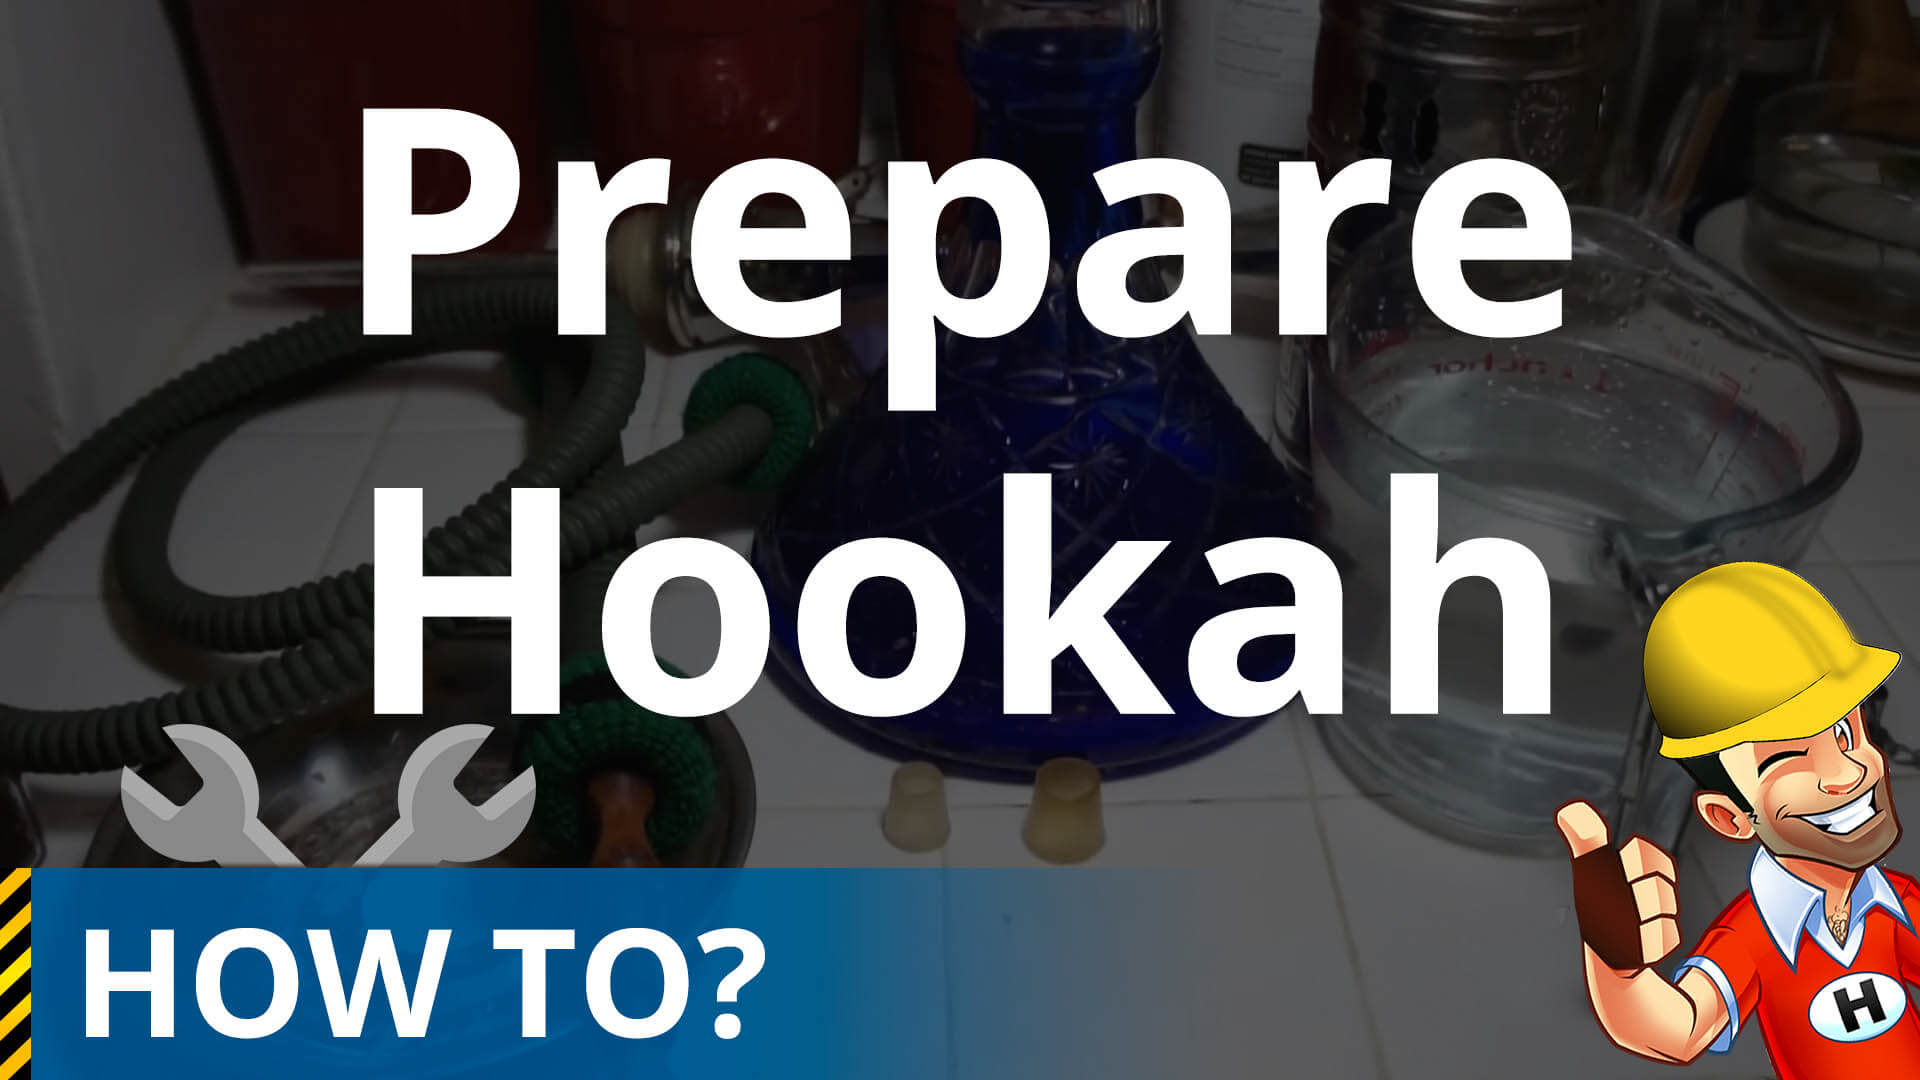 How to prepare a hookah